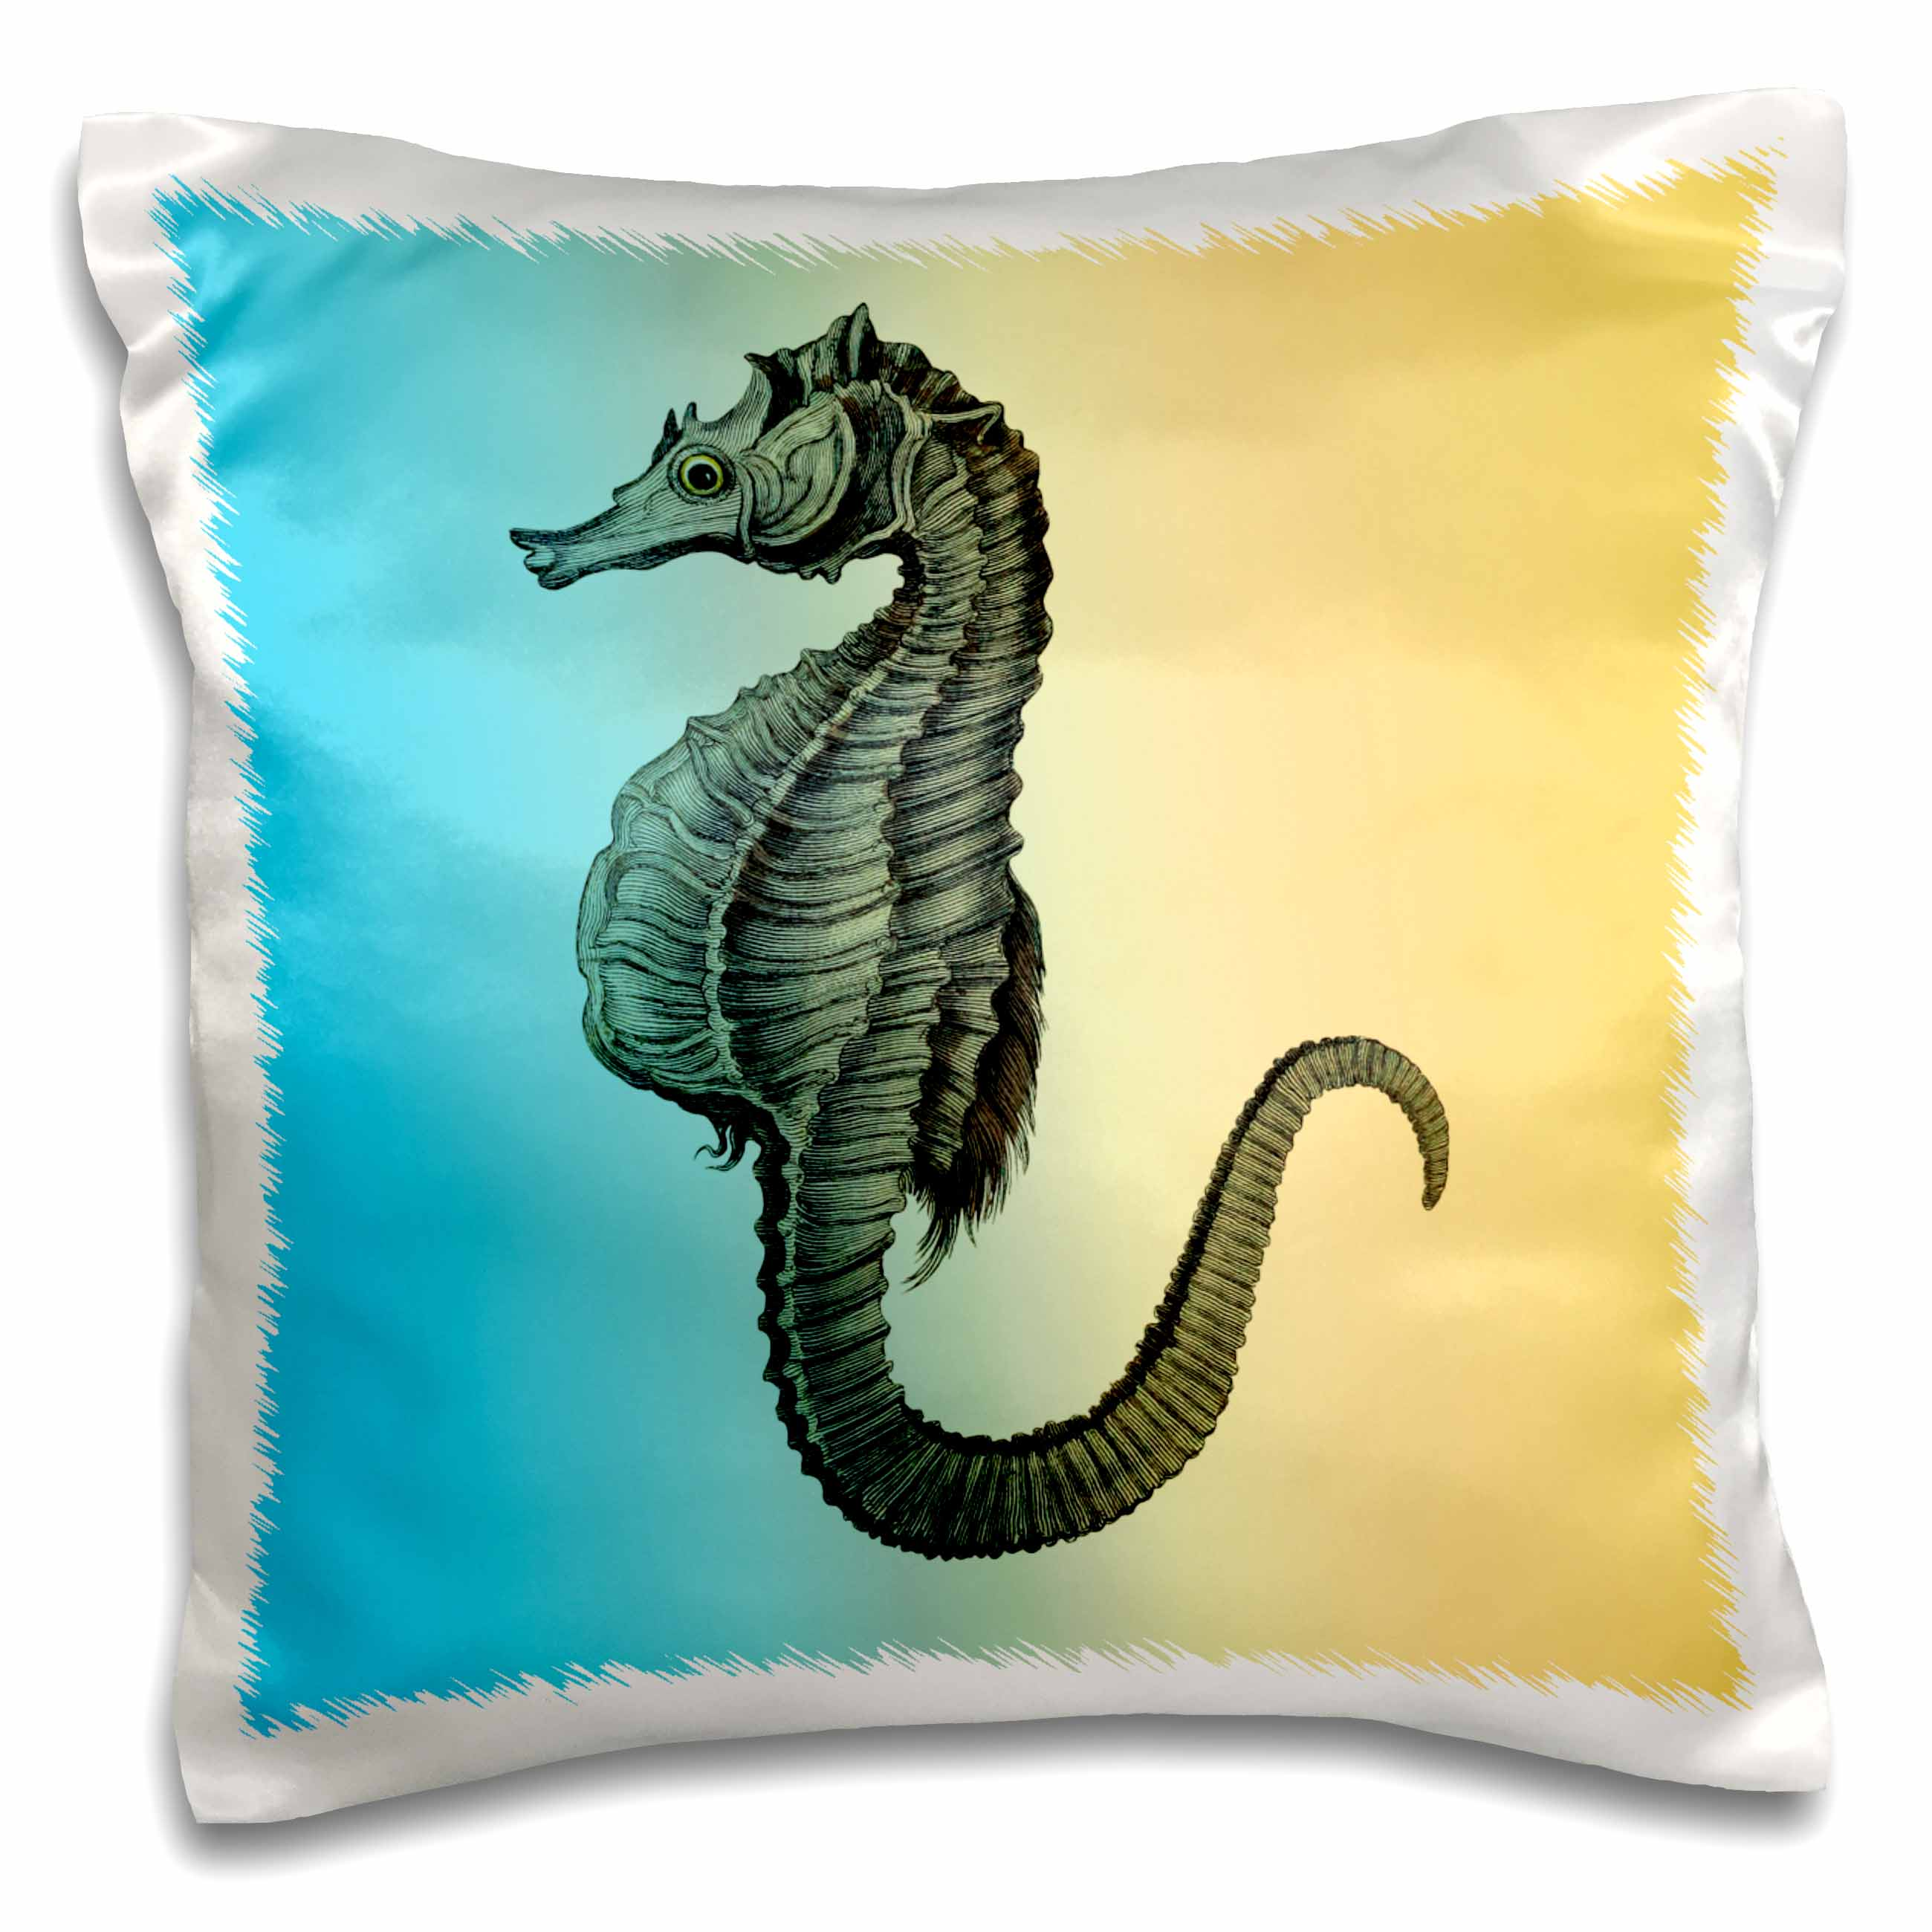 3dRose Aqua and Yellow Nautical Sea Horse - Pillow Case, 16 by 16-inch